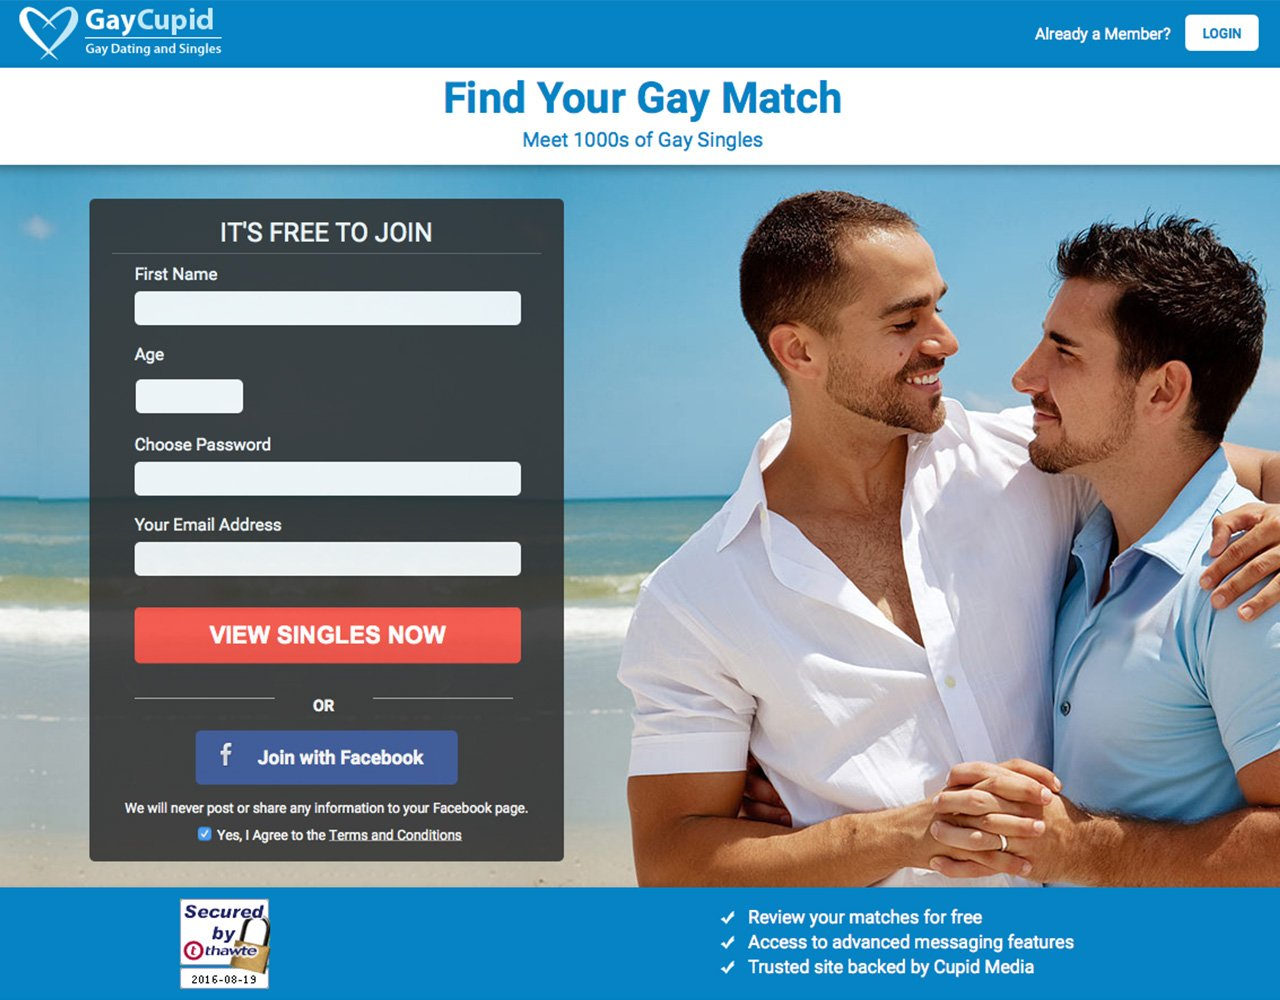 tazewell gay dating site While most gay dating sites are focused on casual dating, and hook ups, we cater to a high quality, sophisticated, and educated member if you're tired of cruising for a casual relationships and flings, and are ready for something more meaningful, if you're serious about gay dating then men, you're at the right place.